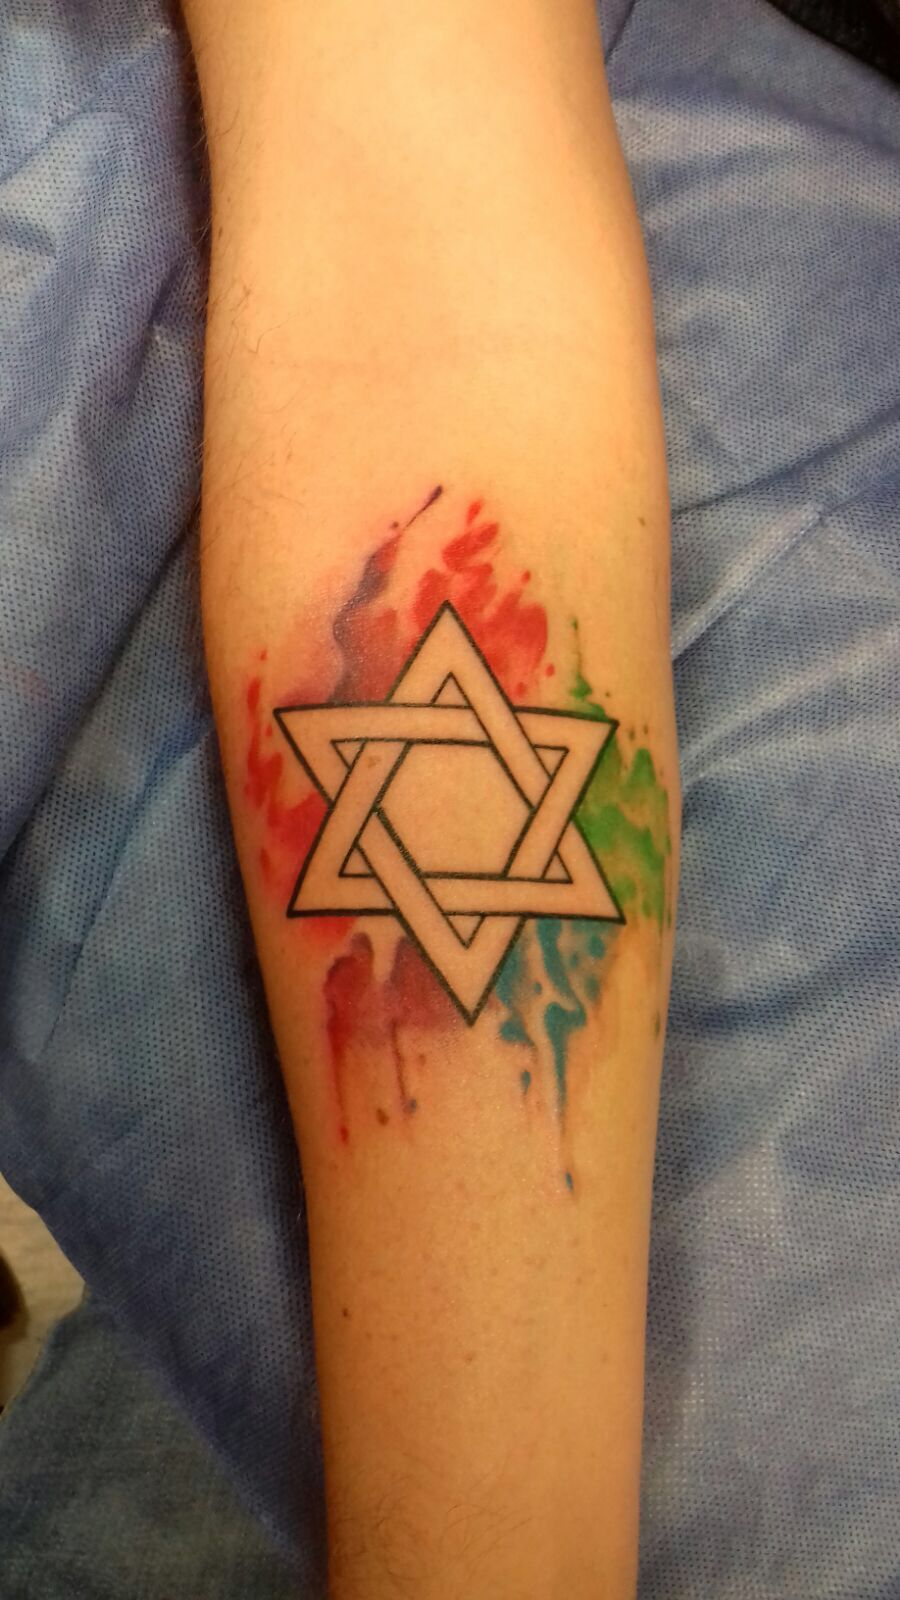 Tatuaje Tatto Estrella De David Tatuaje Pinterest Tattoos